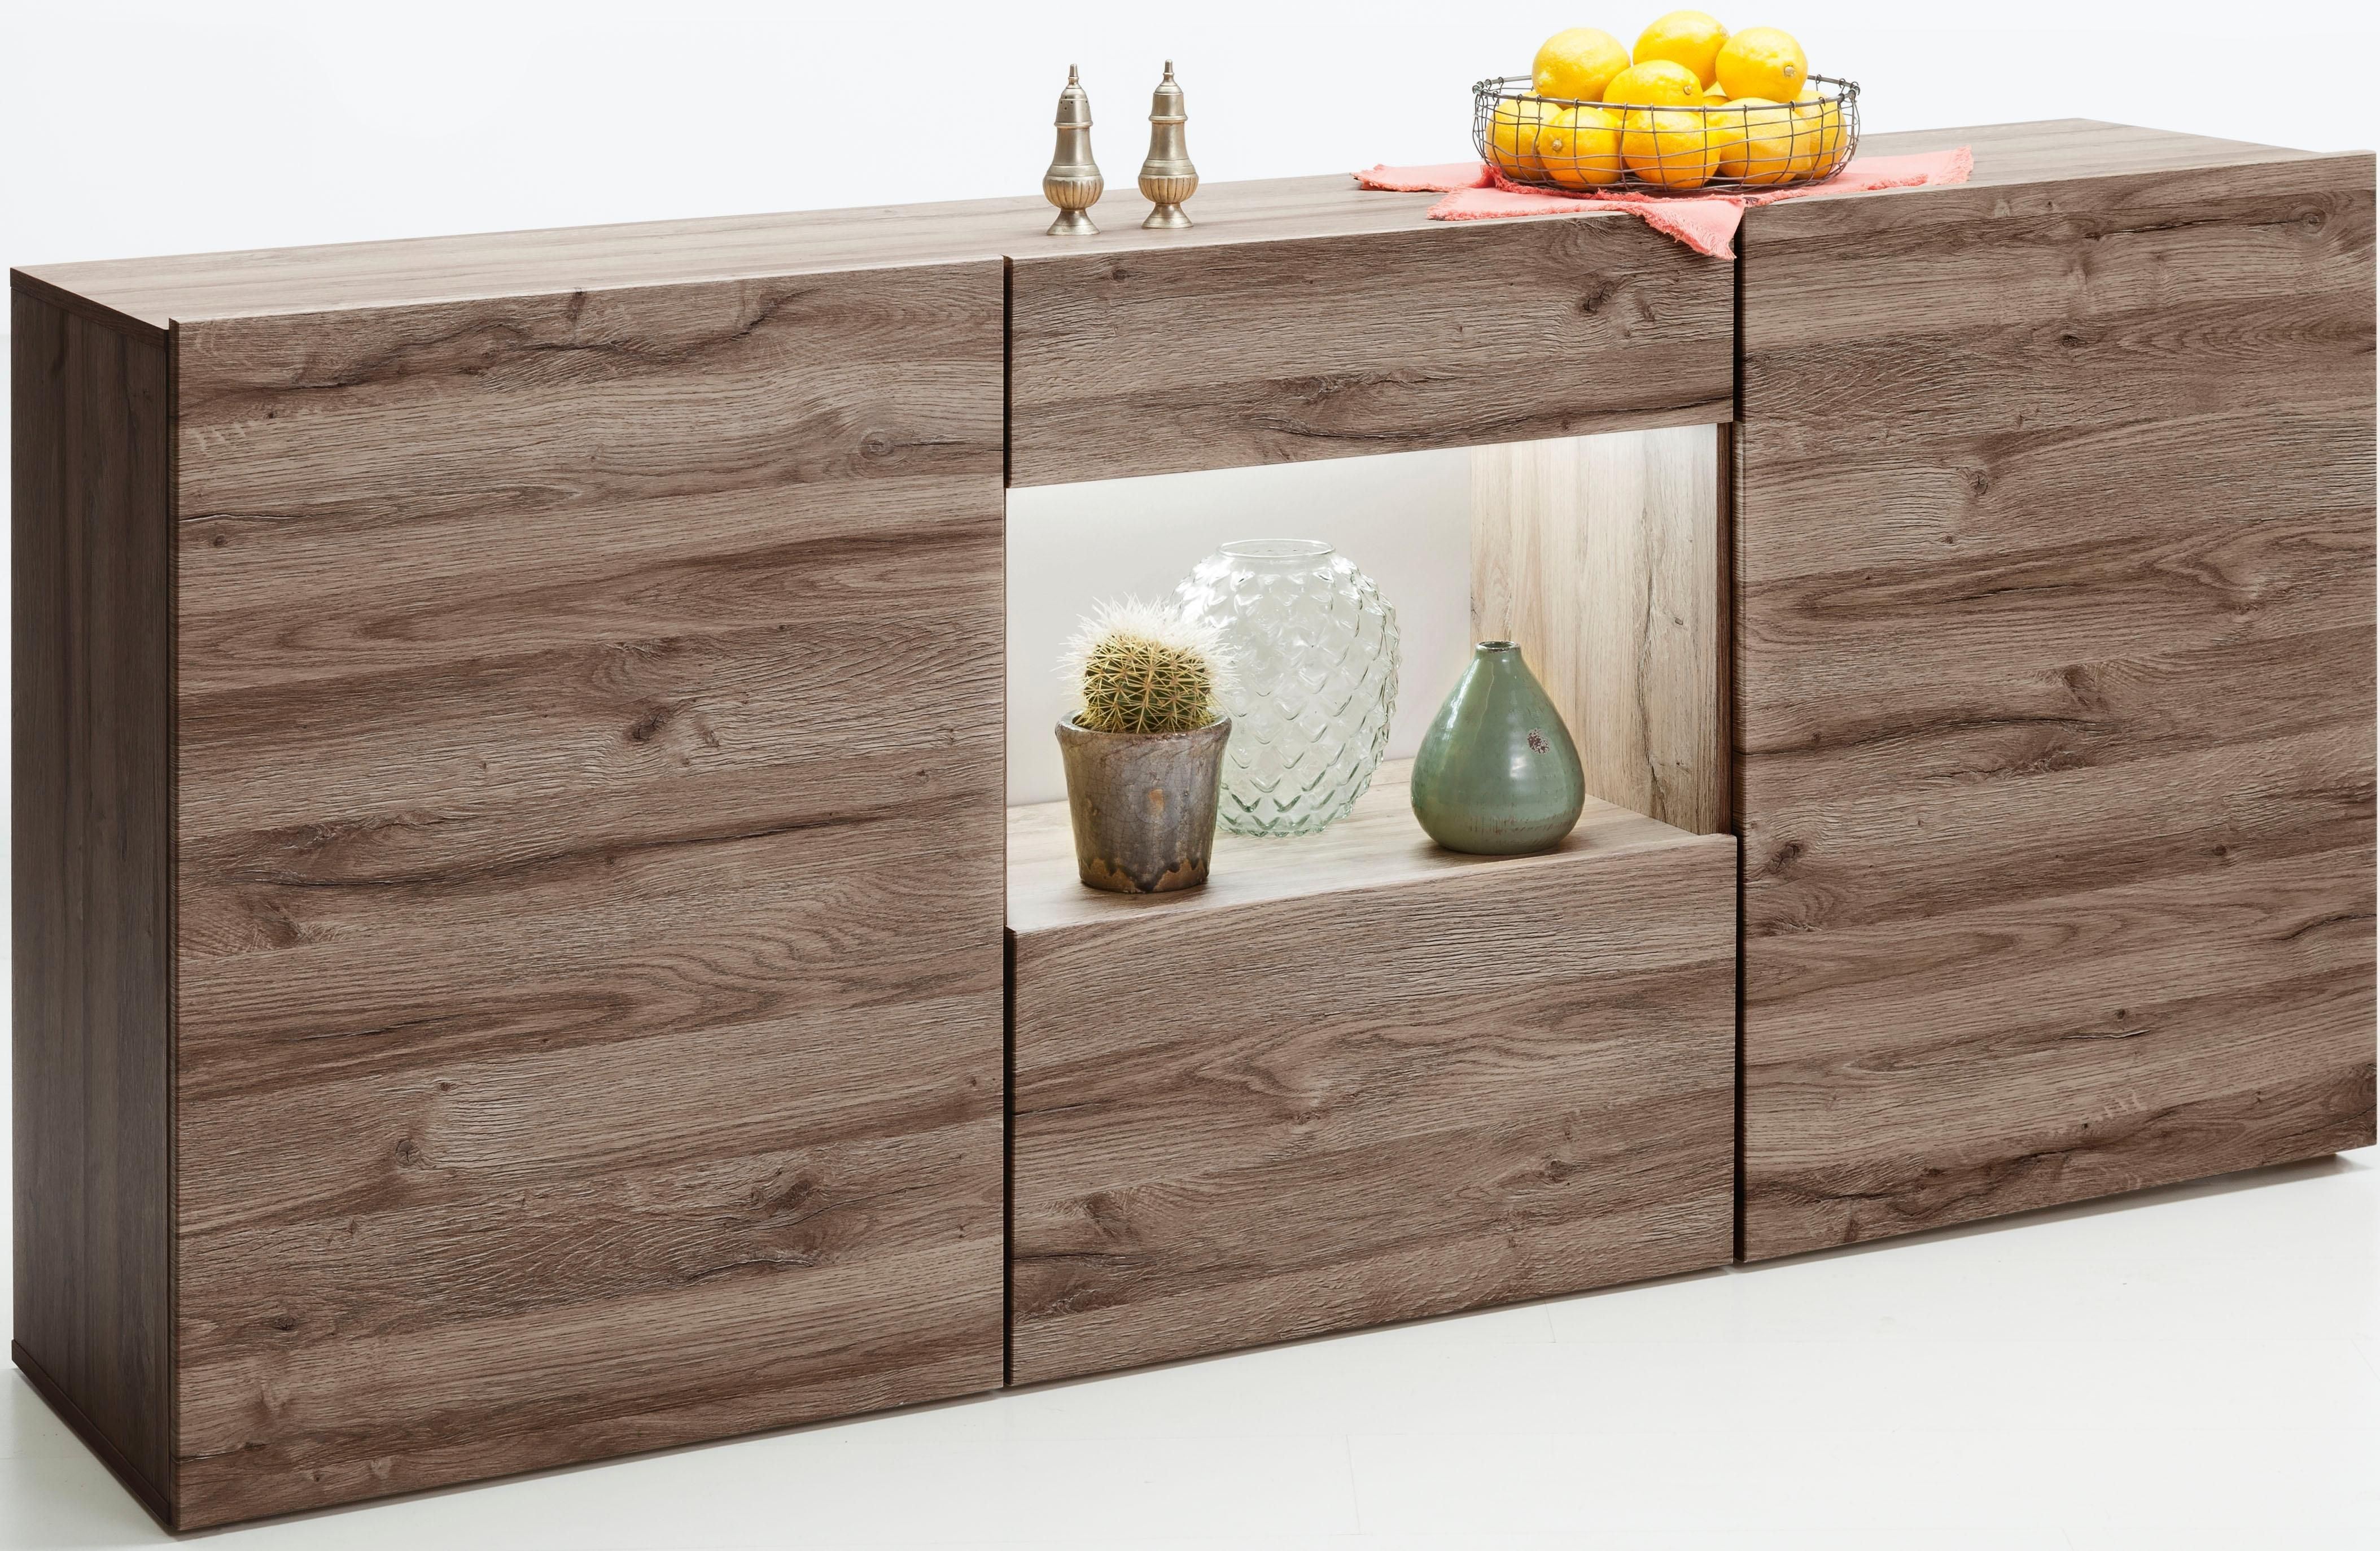 Photo of 05900488558367 at BAUR | set one by Musterring Sideboard ta …